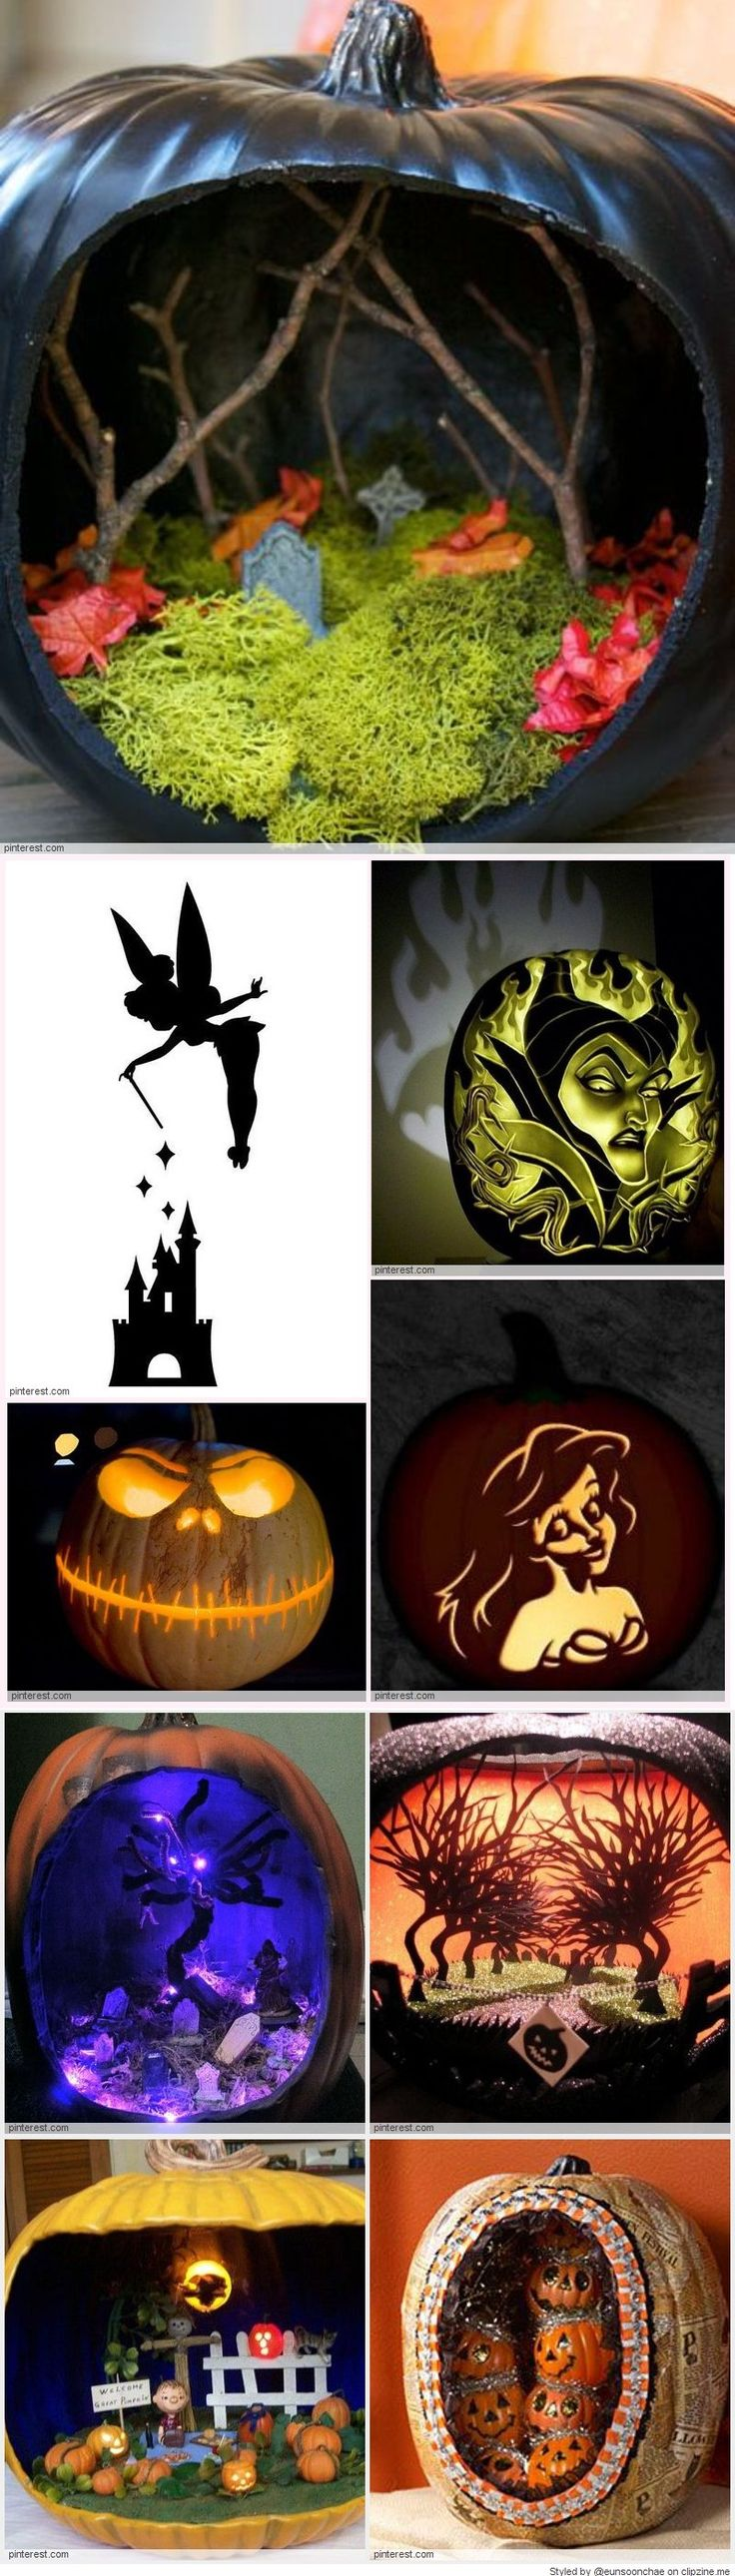 1006 best Pumpkins images on Pinterest